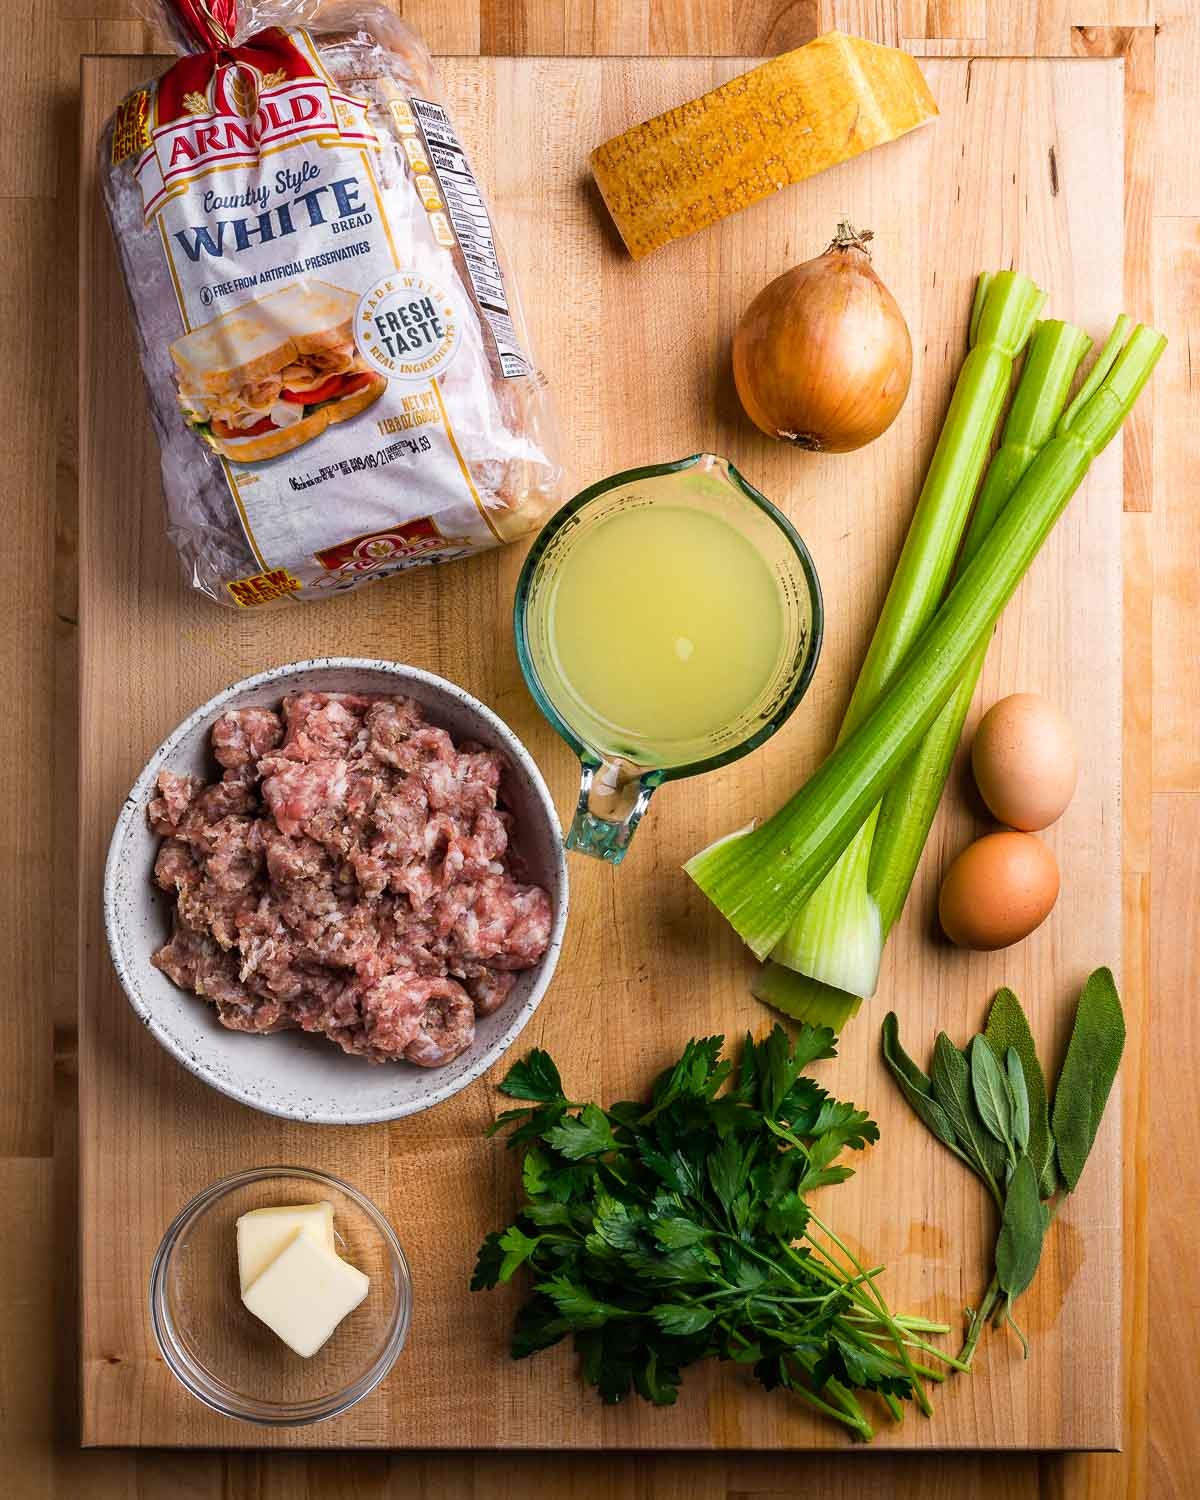 Ingredients shown: white bread, parmesan, onion, celery, chicken stock, sausage, butter, eggs, and herbs.